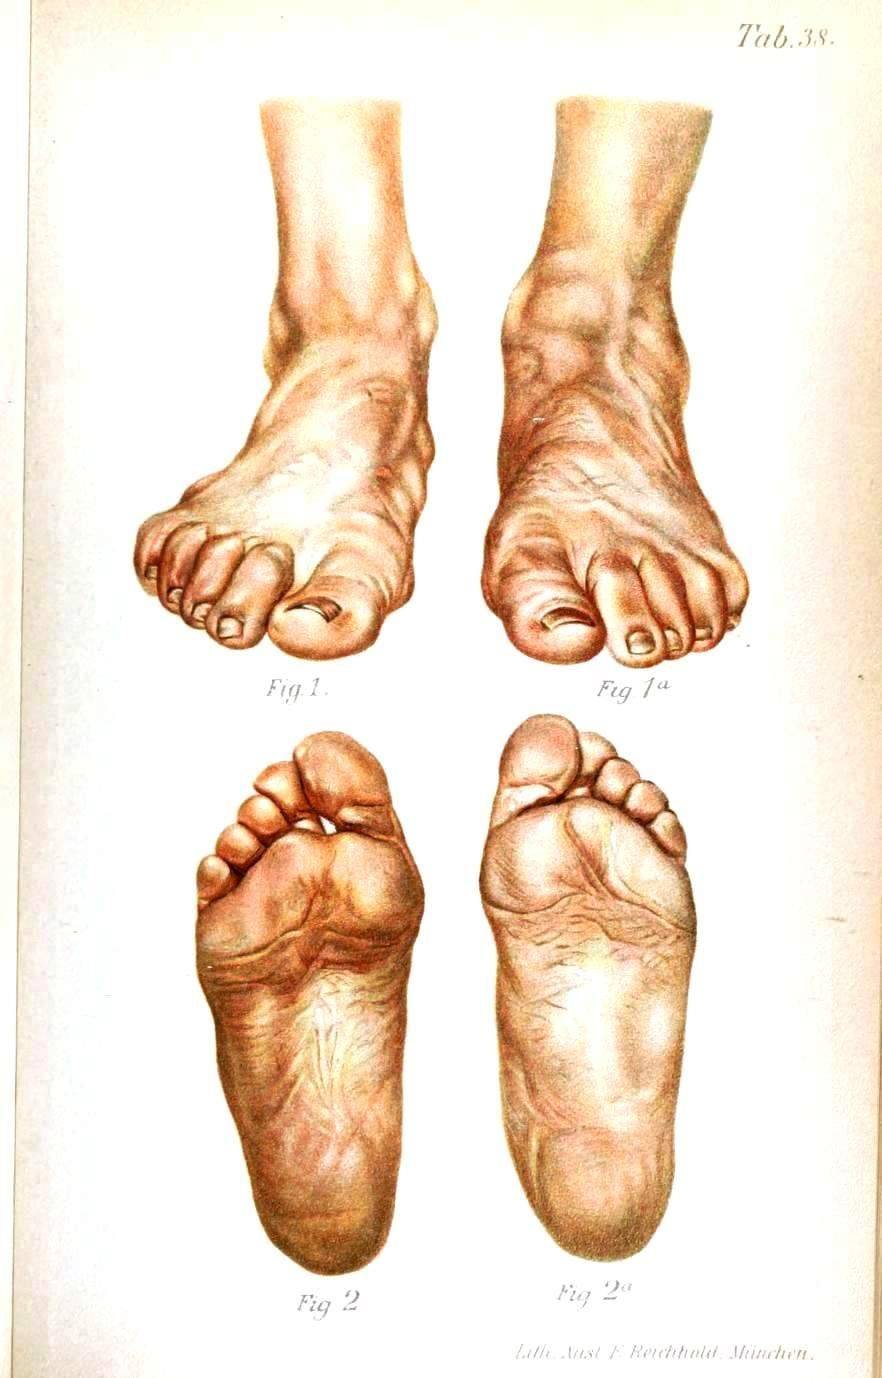 A Sprained Ankle | cuadro persona | Pinterest | Sprained ankle and ...